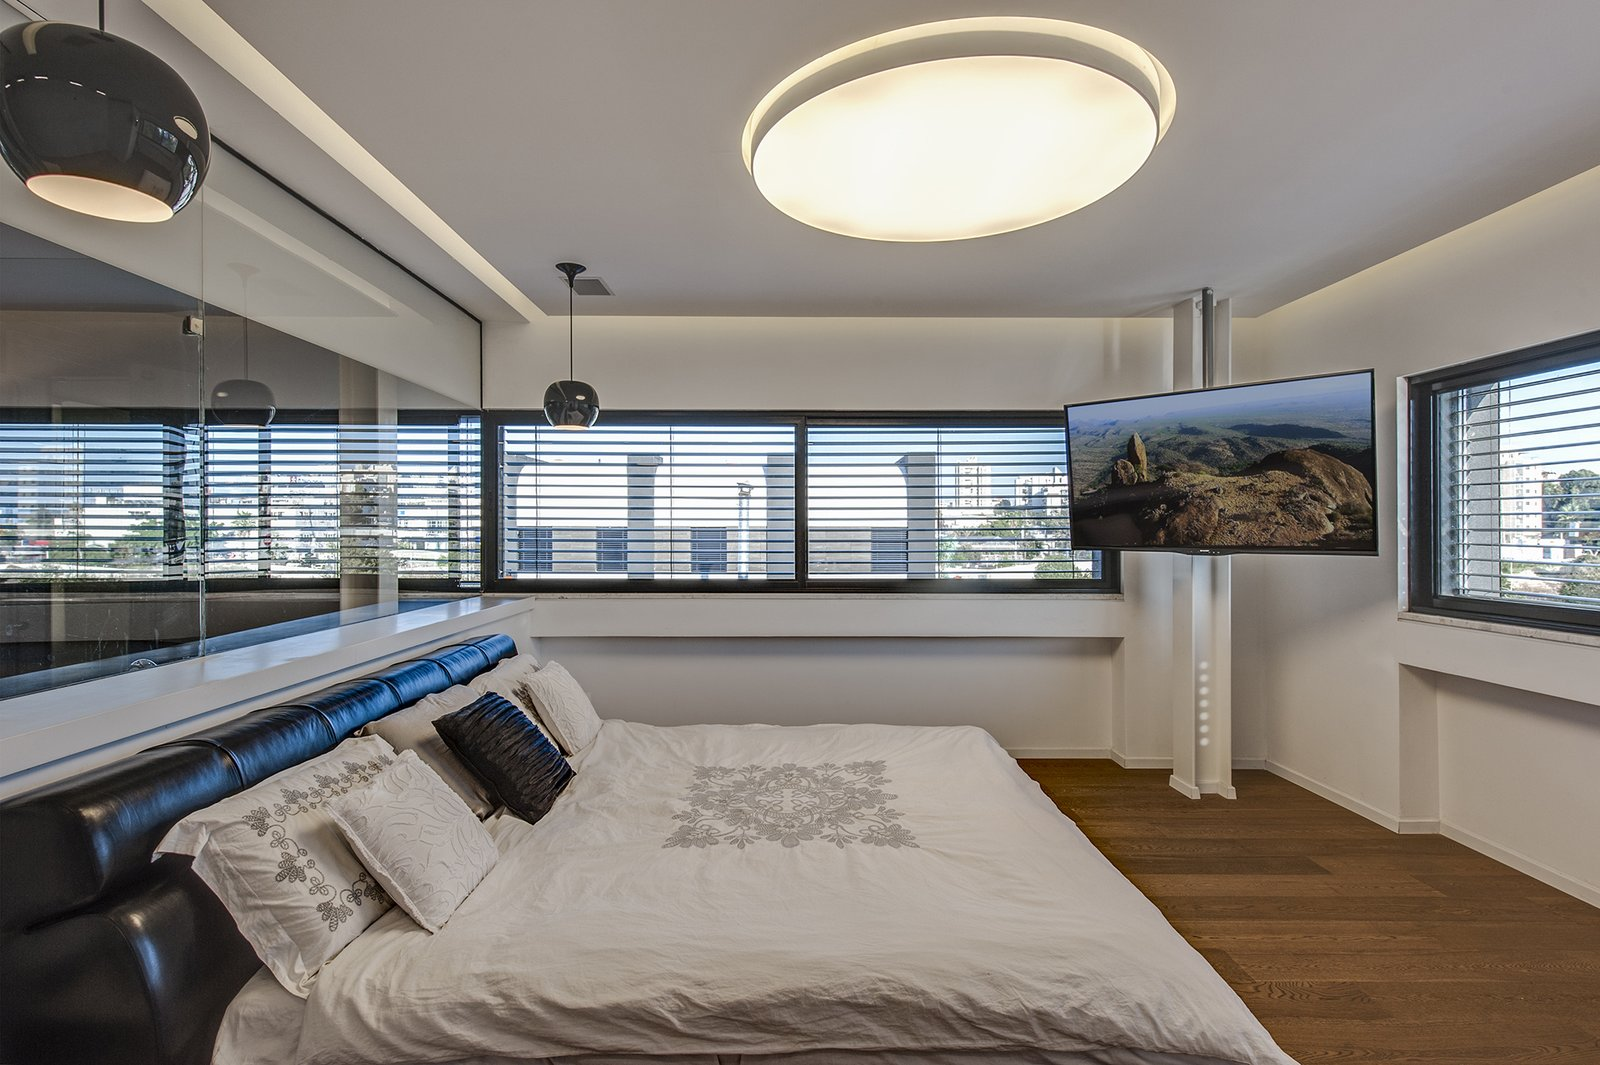 In the master bedroom, warm hardwood flooring and backlit perimeter lighting make the space bright and inviting. Panoramic windows overlook the urban cityscape, fostering a feeling of both openness and privacy.  Rishon Le Zion 3 by Sarah Akkoush